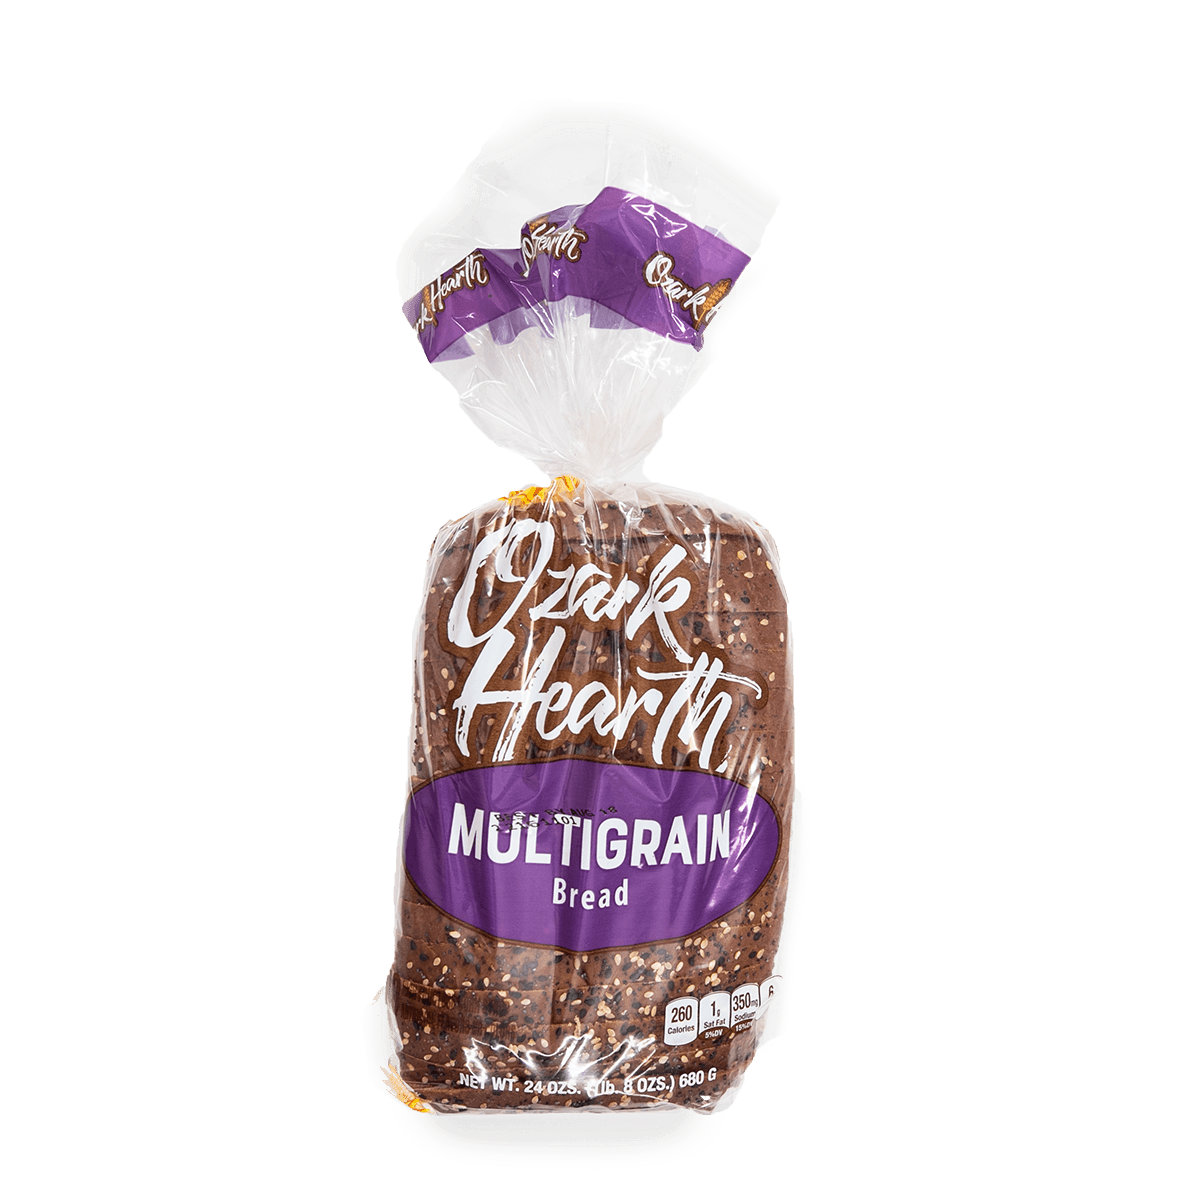 Ozark Hearth Multigrain Bread